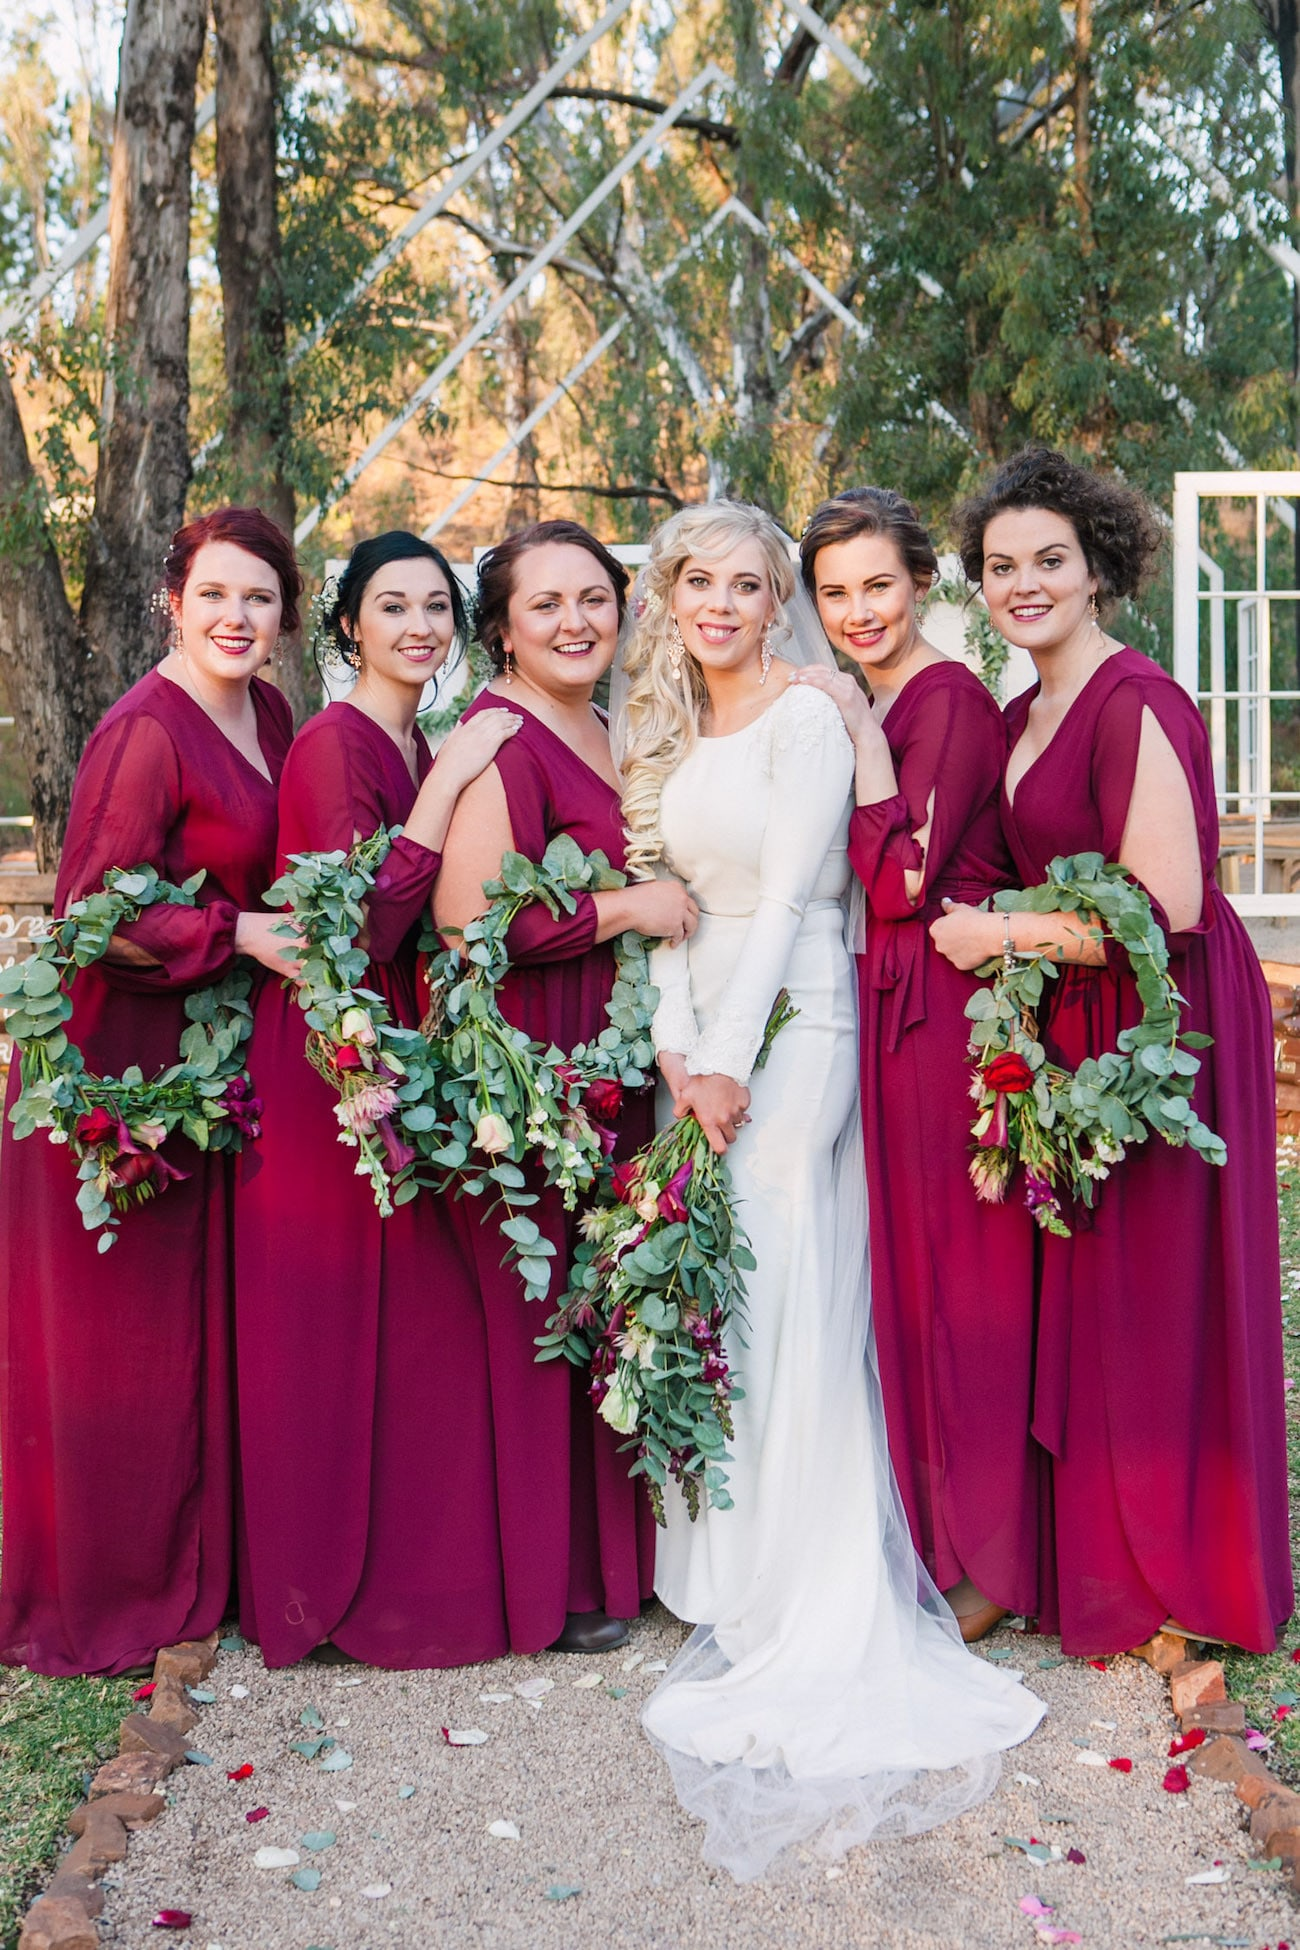 Wreath Bouquets | Joyous Jewel Tone Winter Wedding | Credit: Dust and Dreams Photography